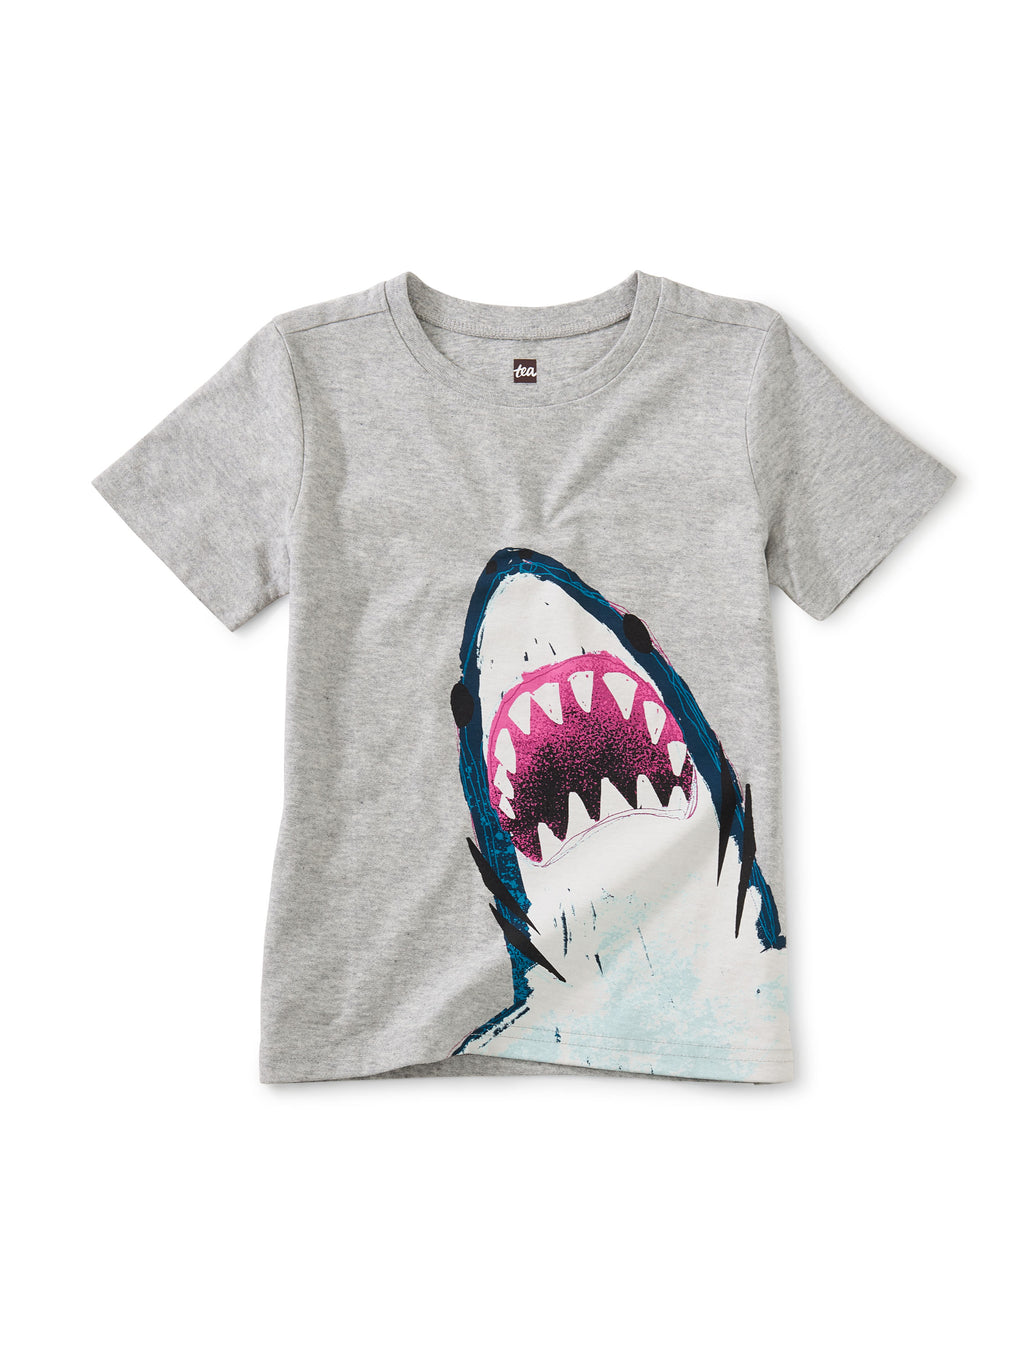 GALAPAGOS SHARK GRAPHIC TEE